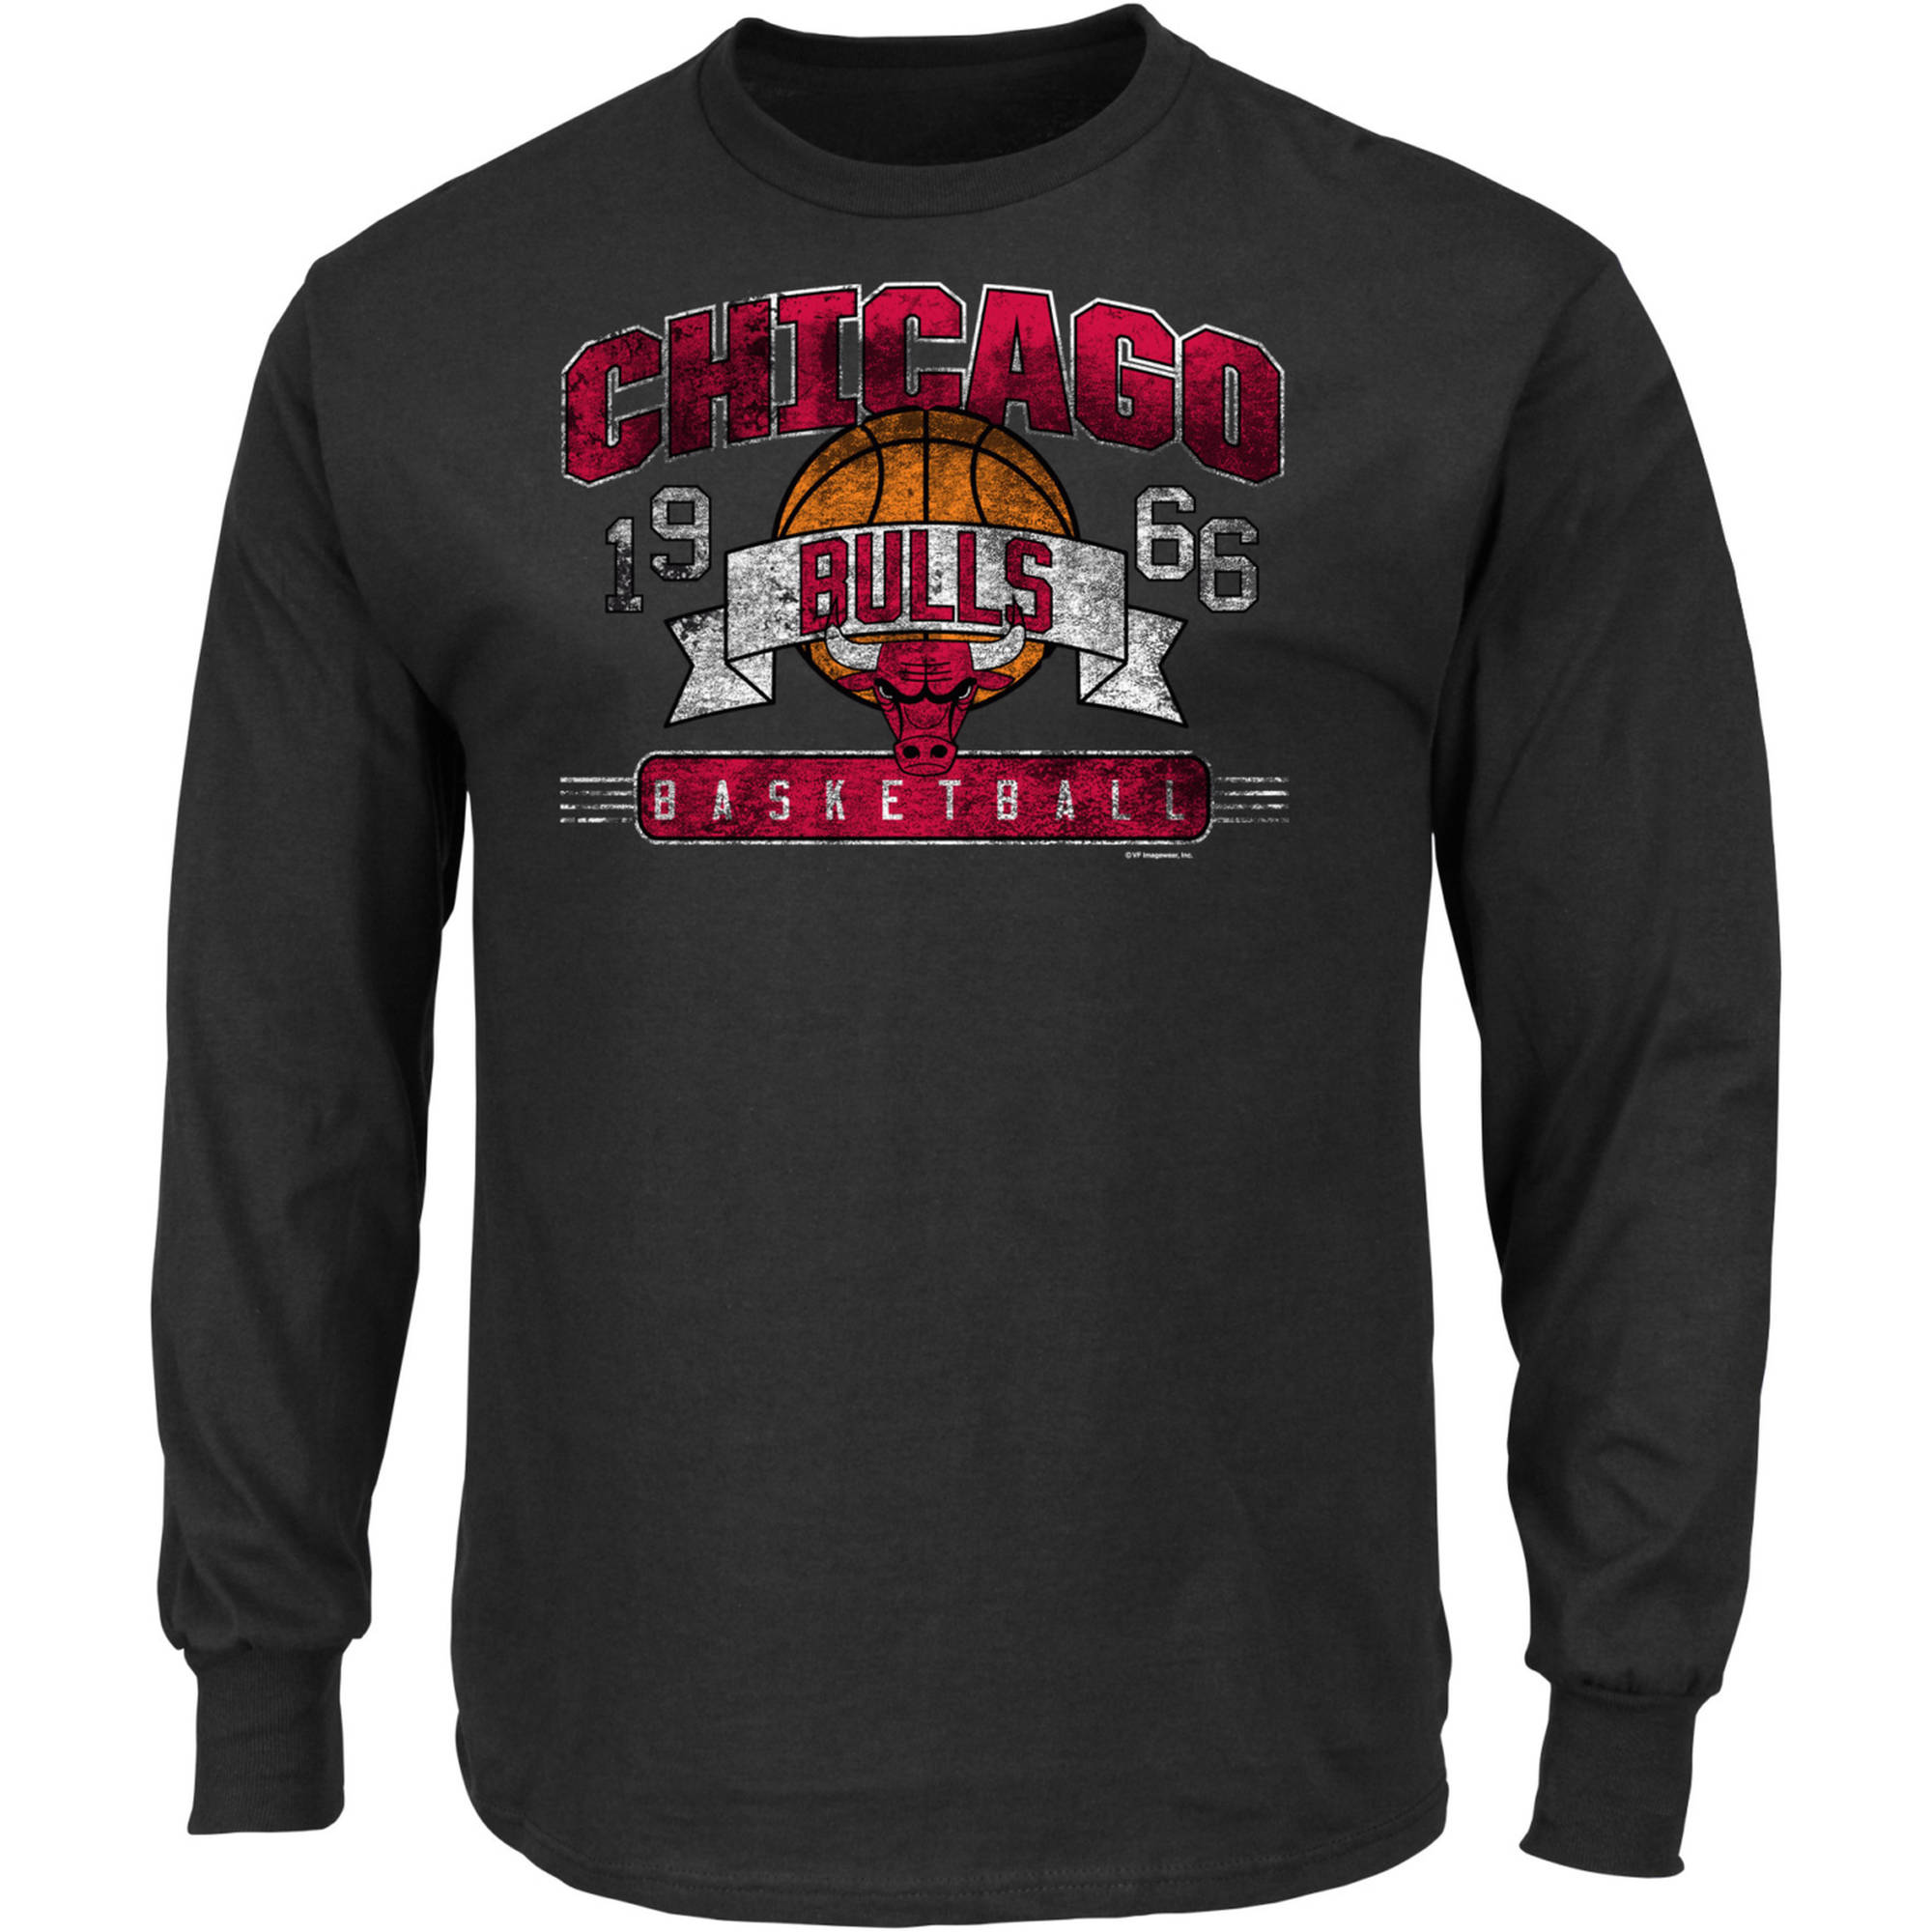 NBA Chicago Bulls Men's Long Sleeve Crew Neck Basic Tee